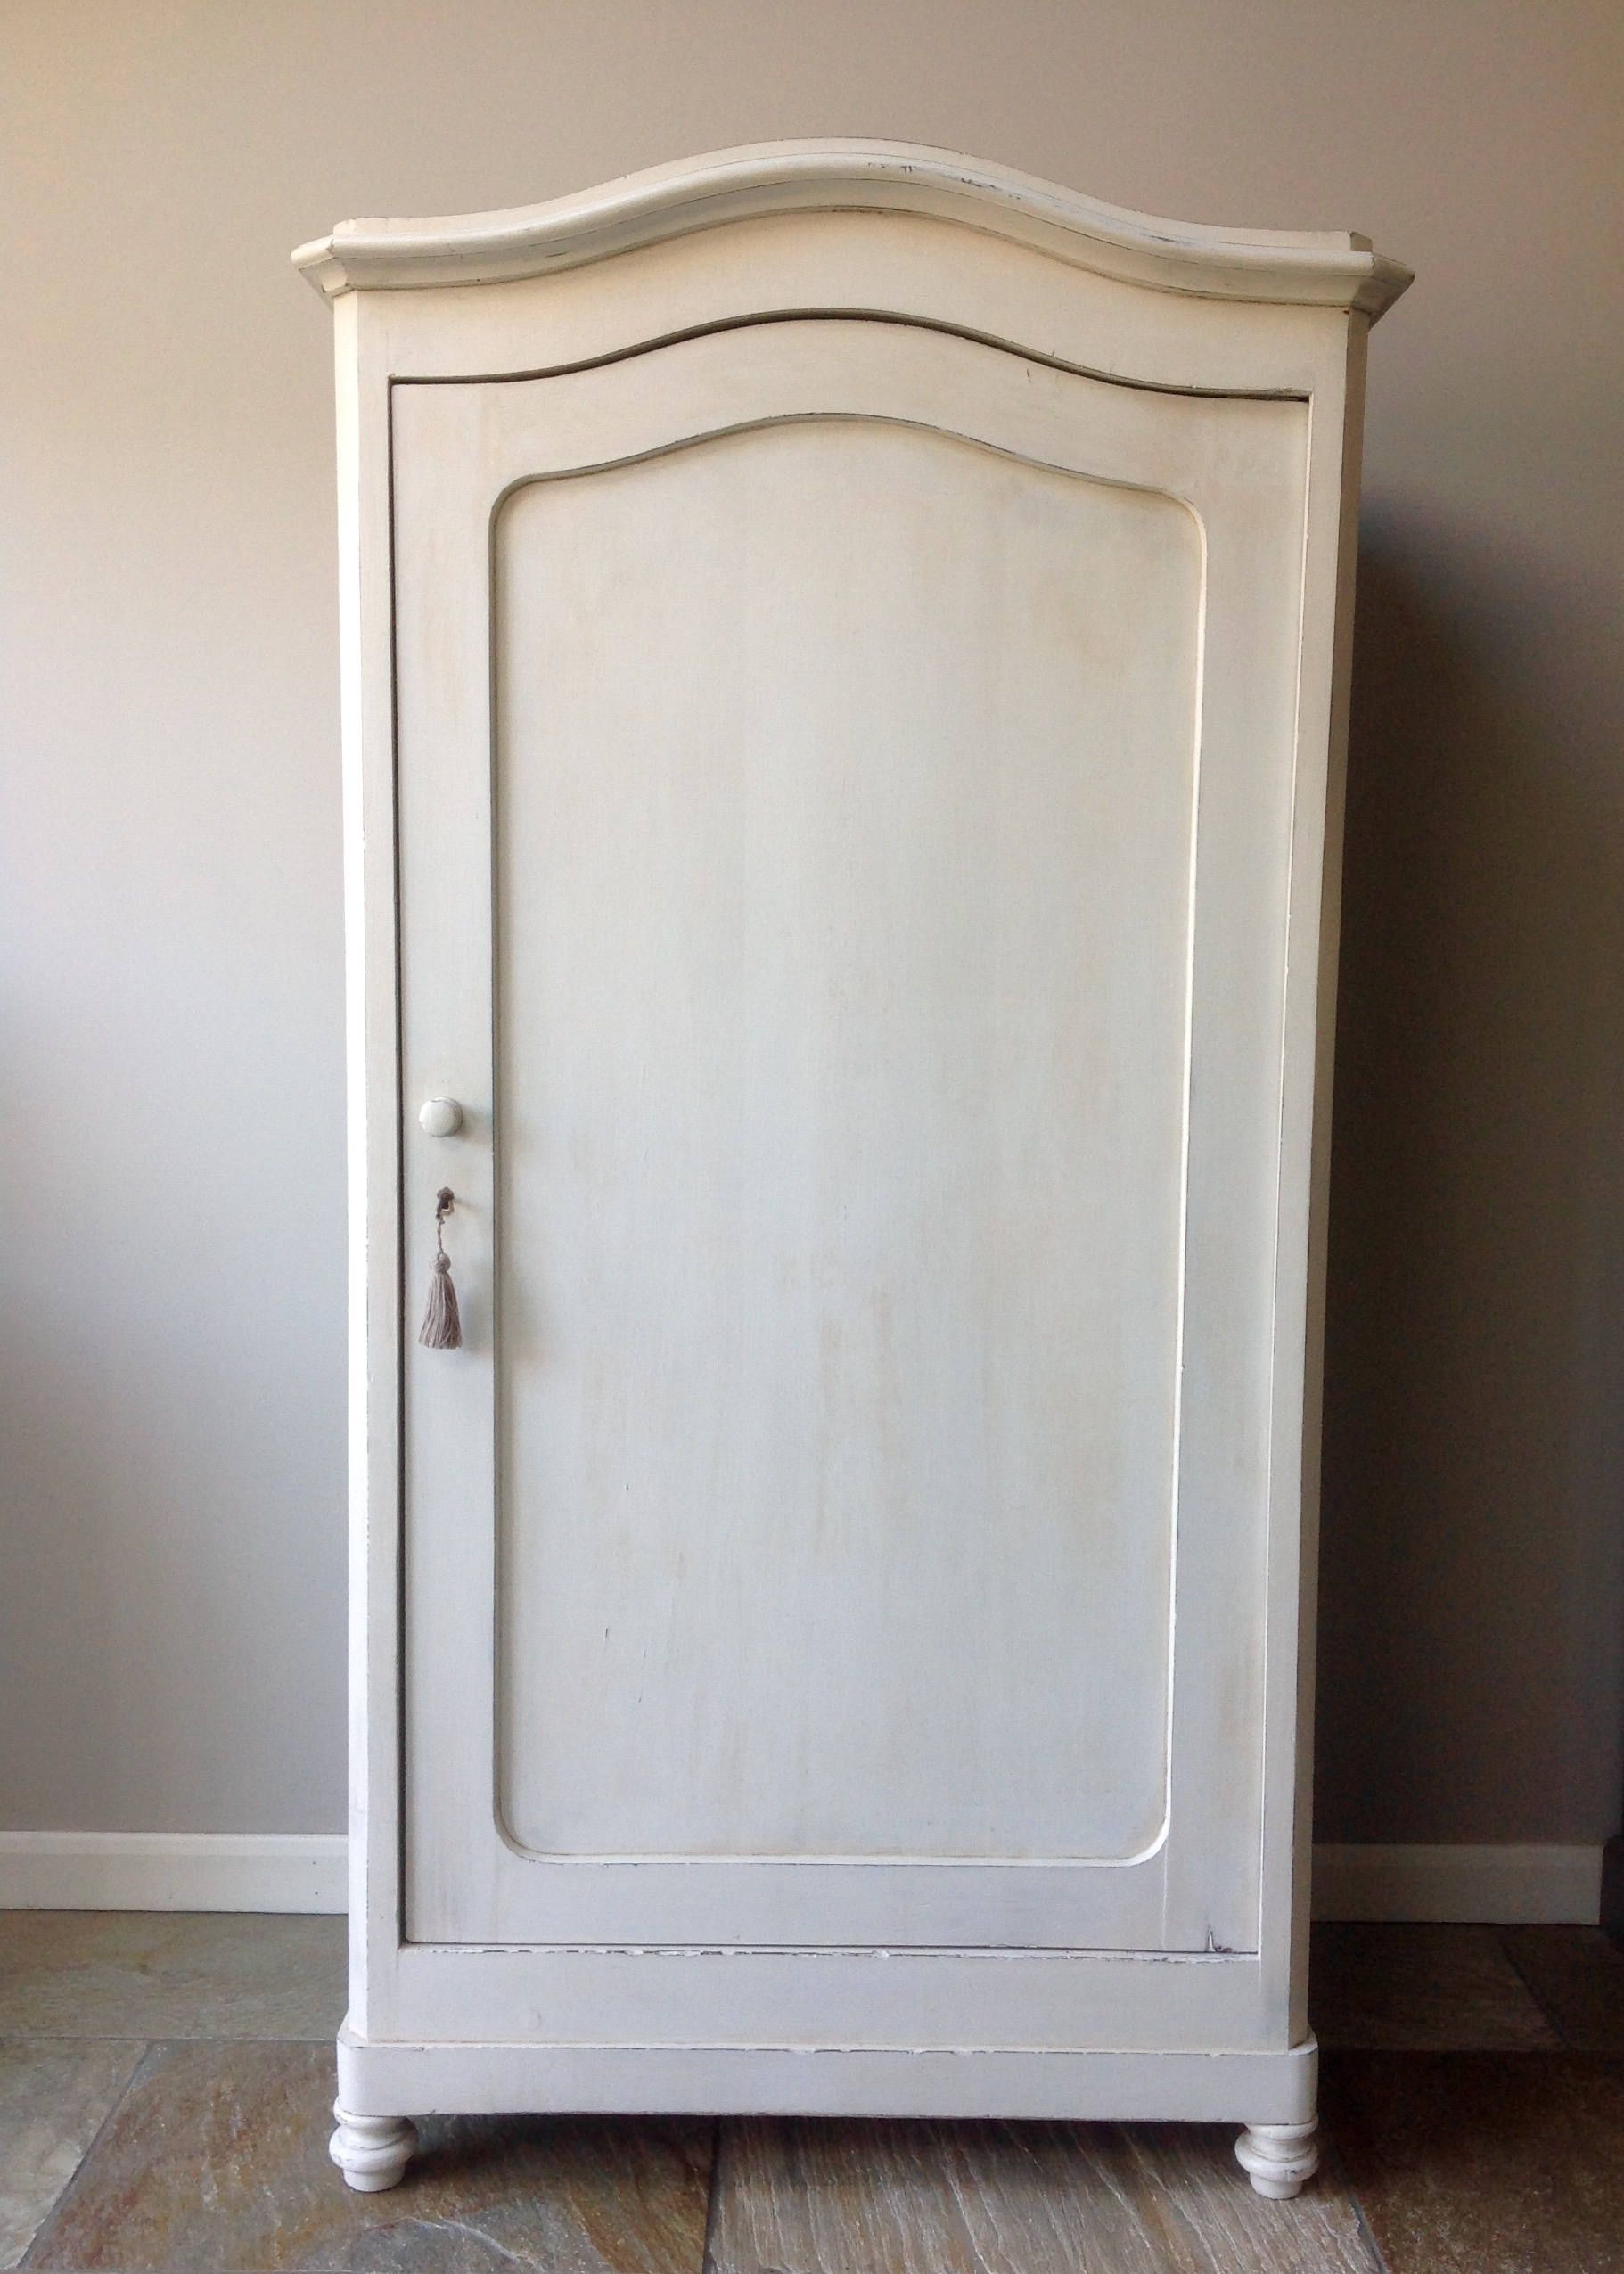 Charmant Antique French Painted Annie Sloan Old White Cream Armoire Wardrobe Hall  Housekeepers Cupboard Storage By ClyneCoFurniture